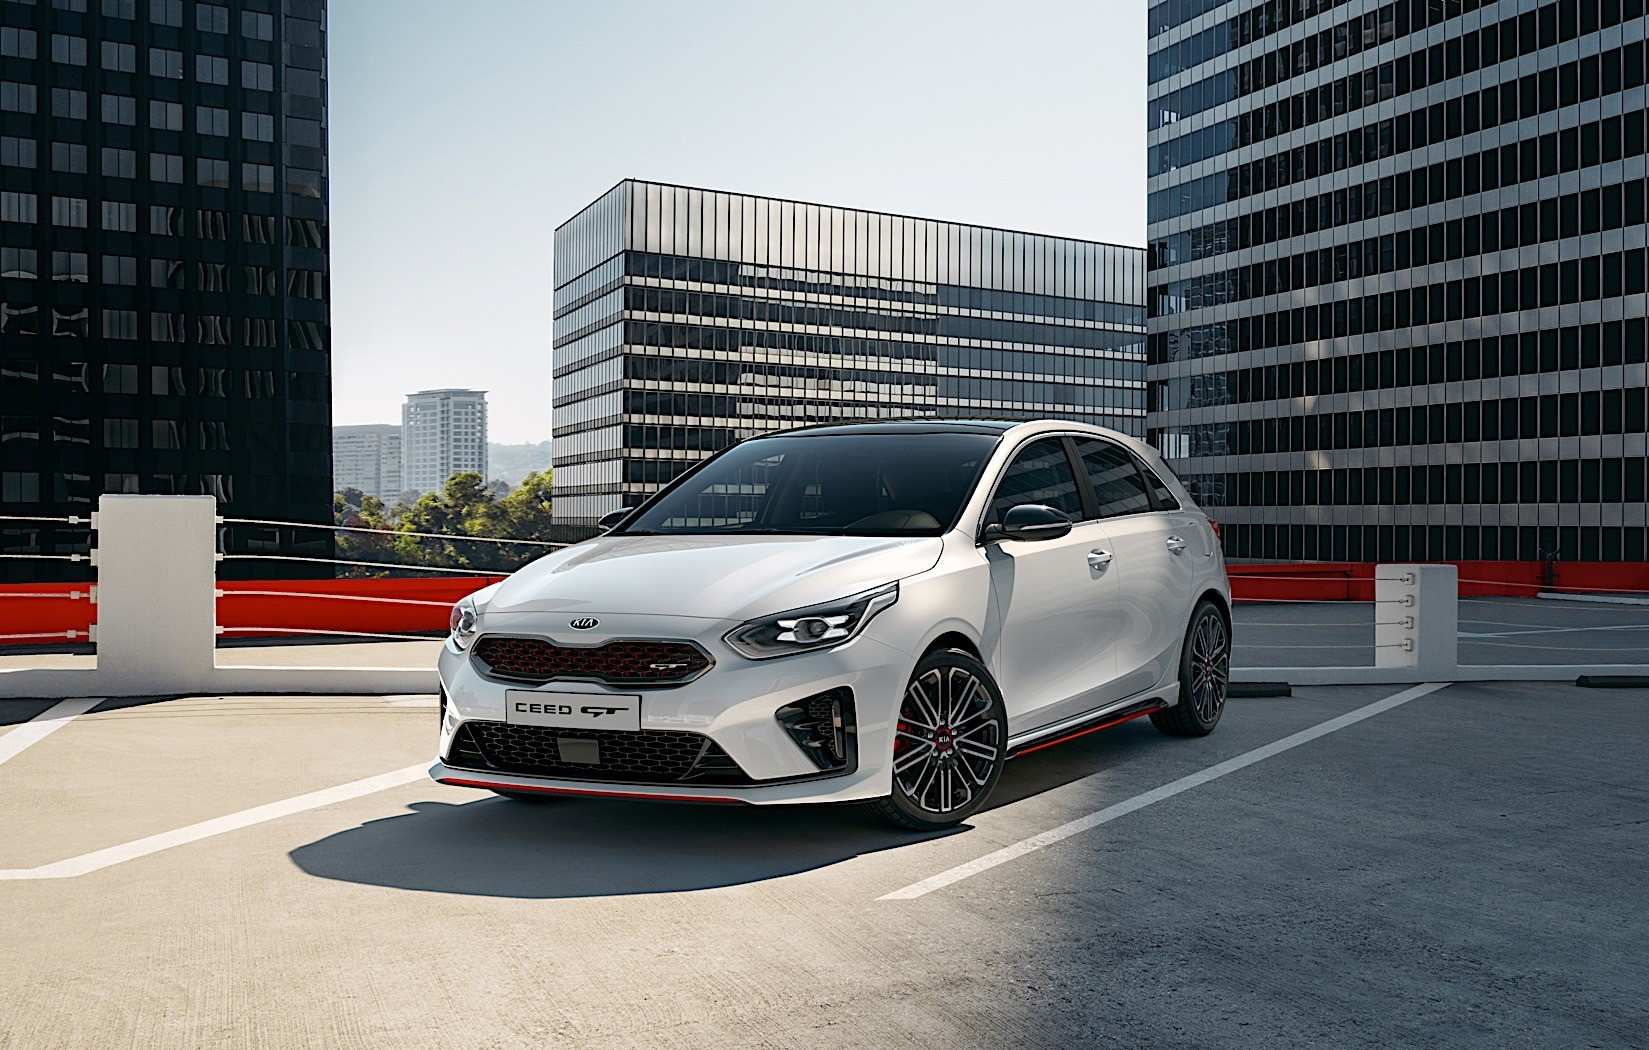 96 Concept of Kia Forte 5 Gt 2020 Prices with Kia Forte 5 Gt 2020